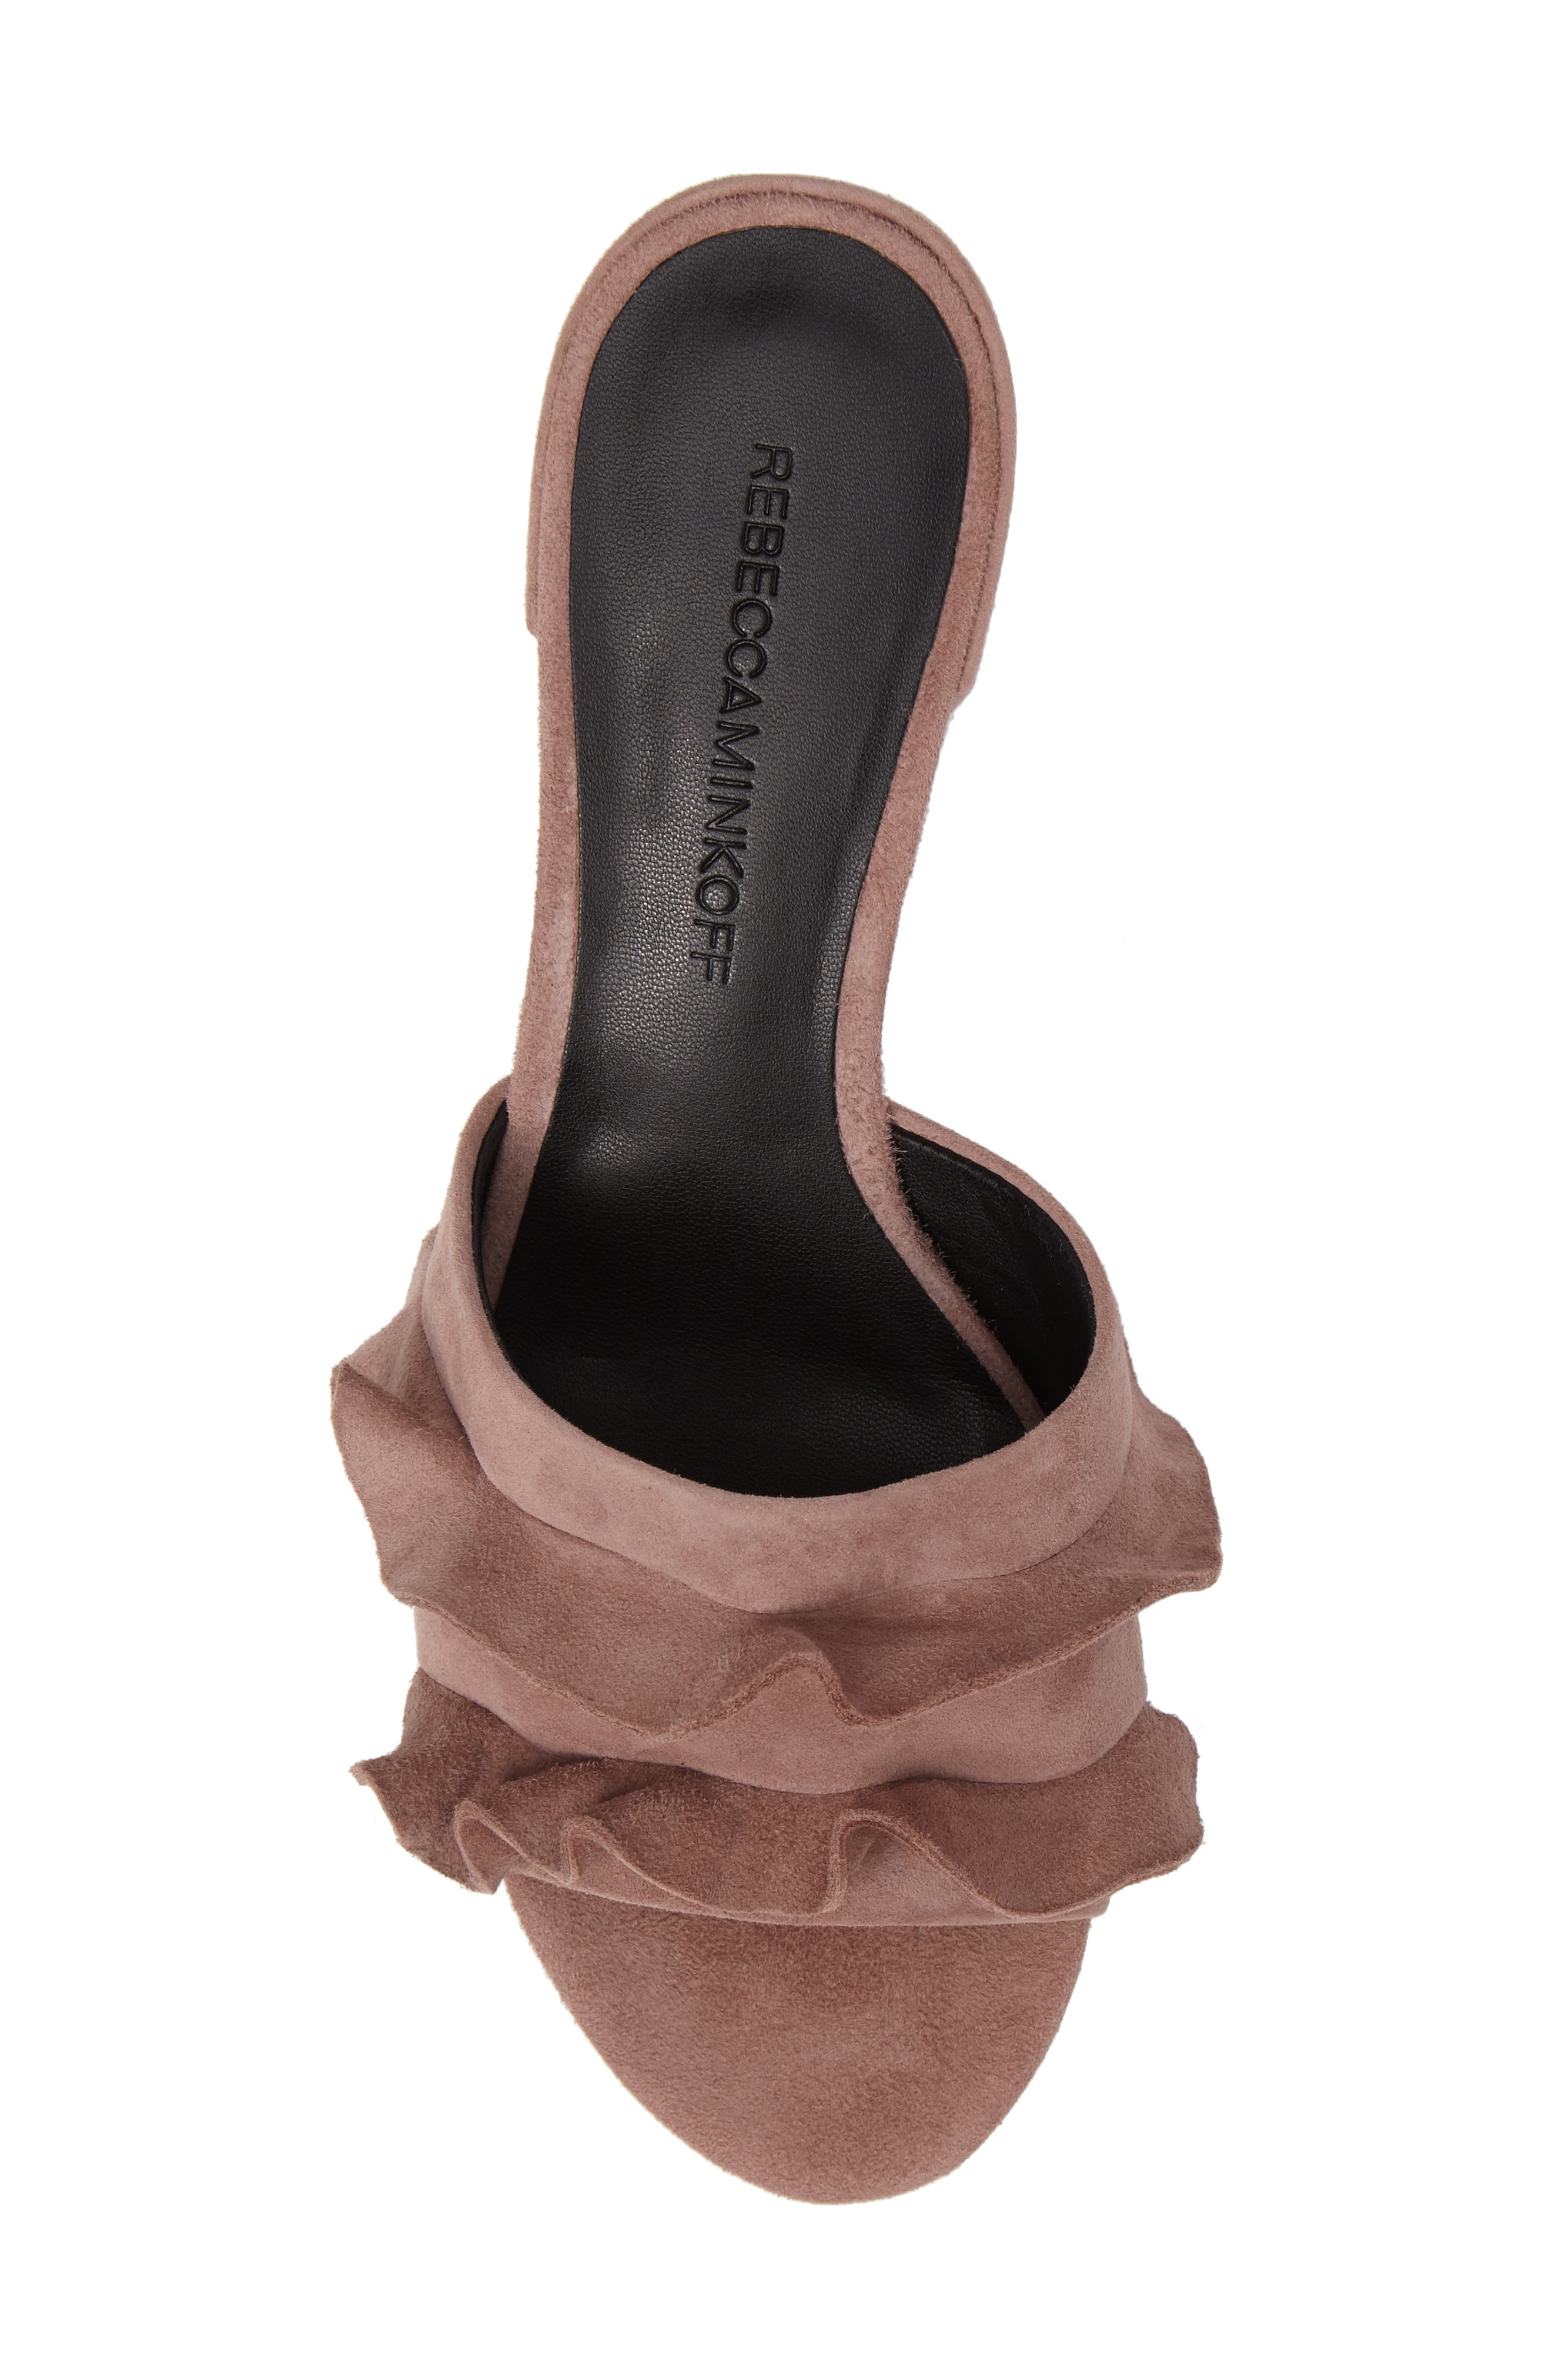 Isabelle Ruffle Mule Sandal,                             Alternate thumbnail 5, color,                             Berry Smoothie Suede